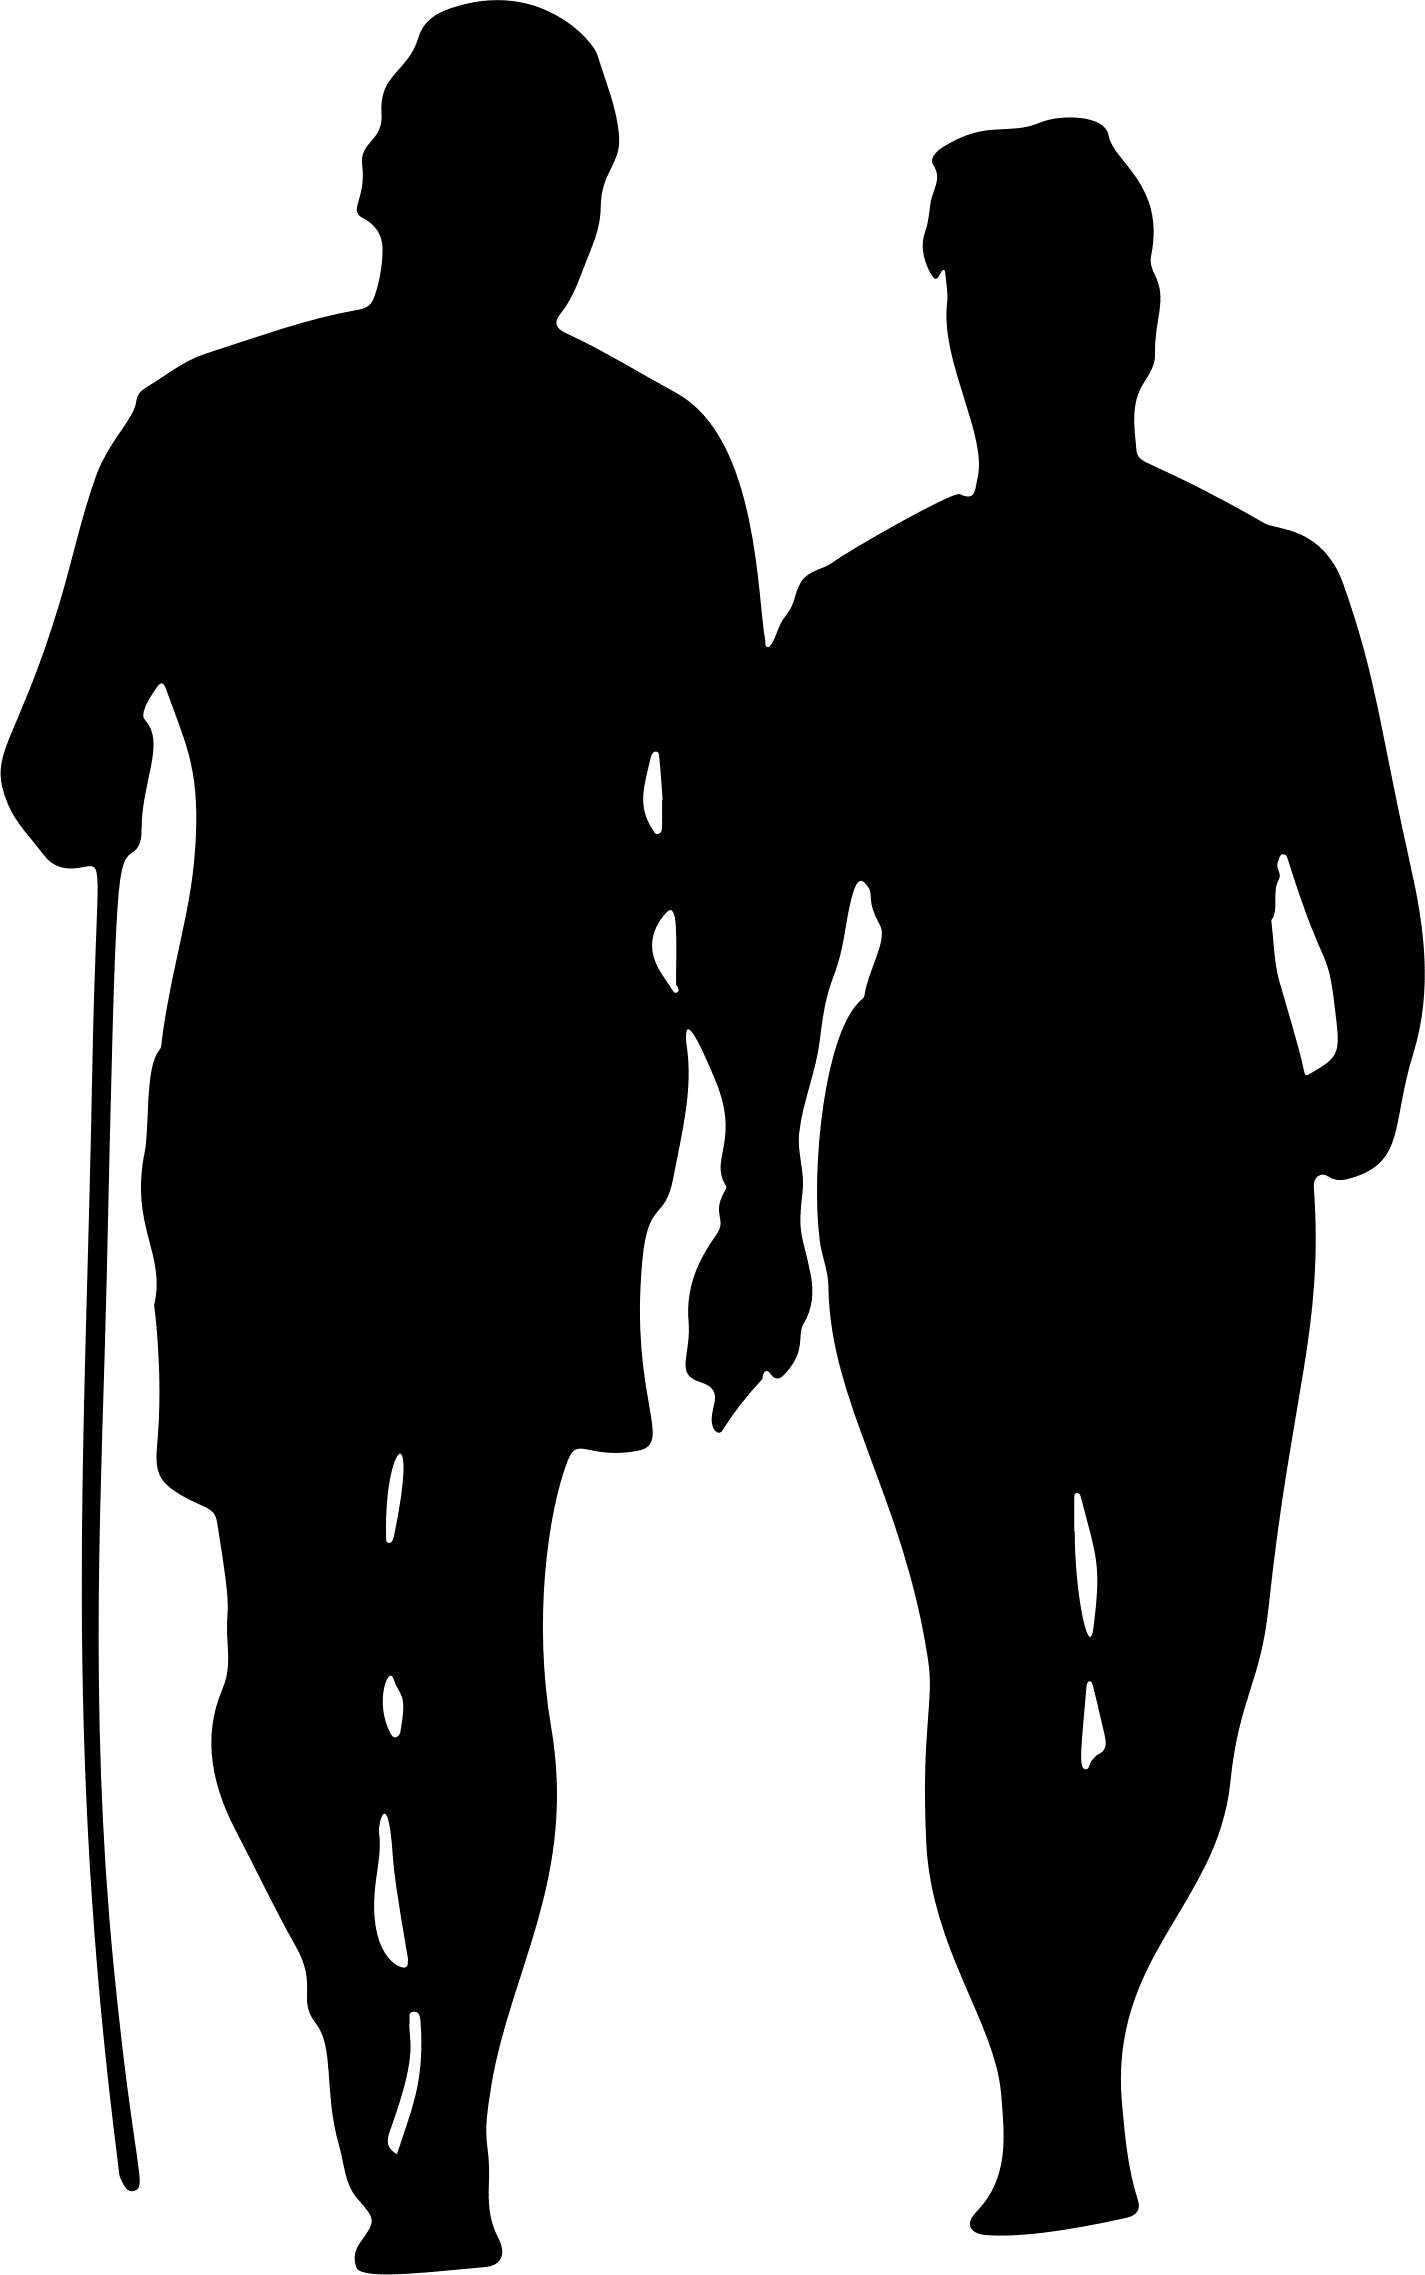 Walking people silhouette png. Couple on beach coury